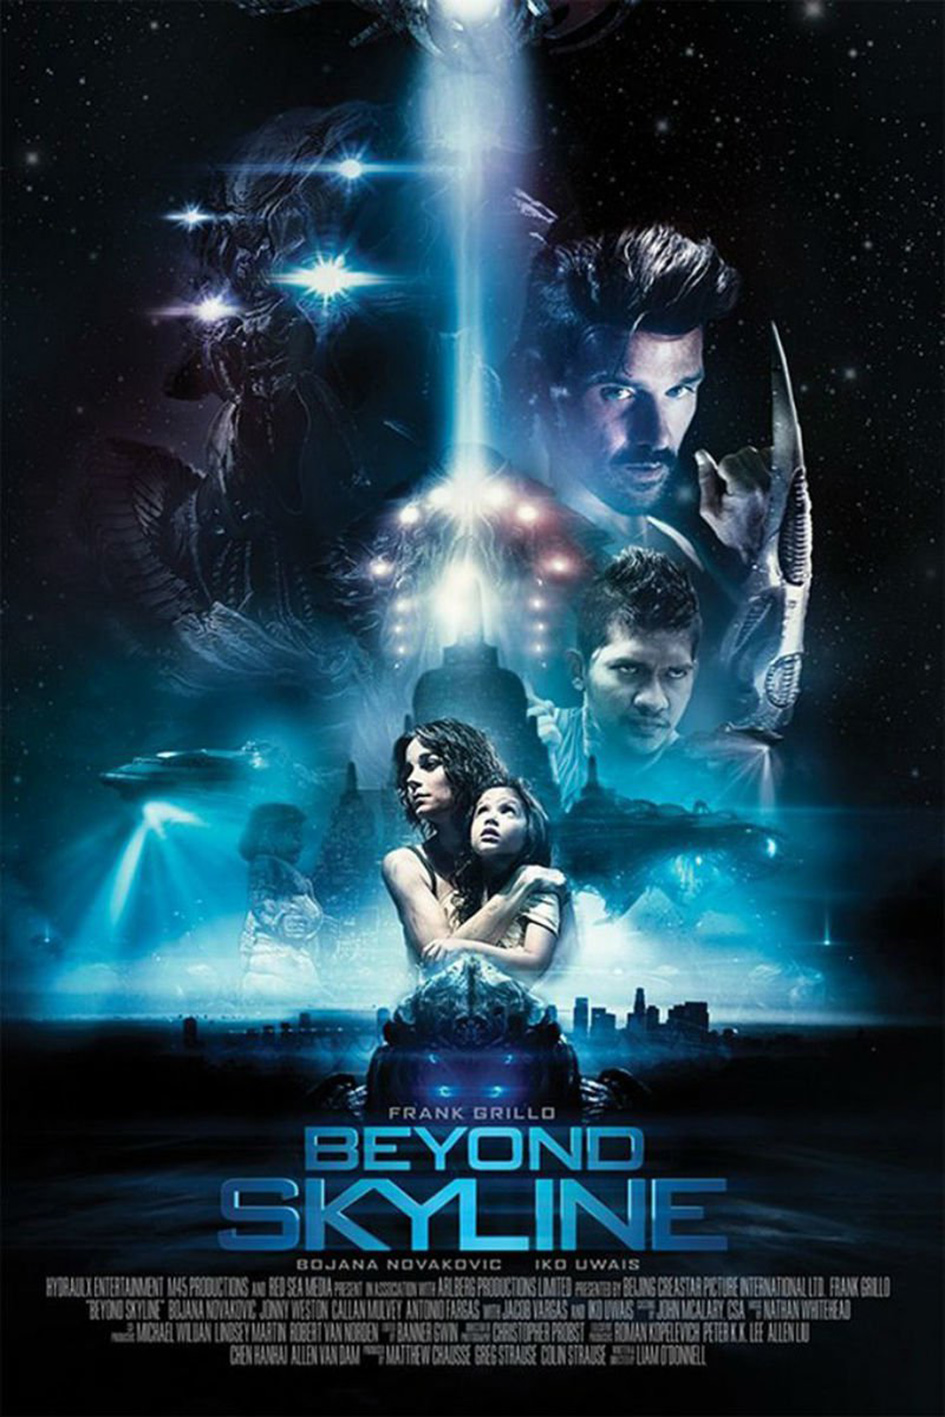 Beyond Skyline [2017 USA, UK, China, Indonesia & Singapore Movie] Action, Adventure, Horror